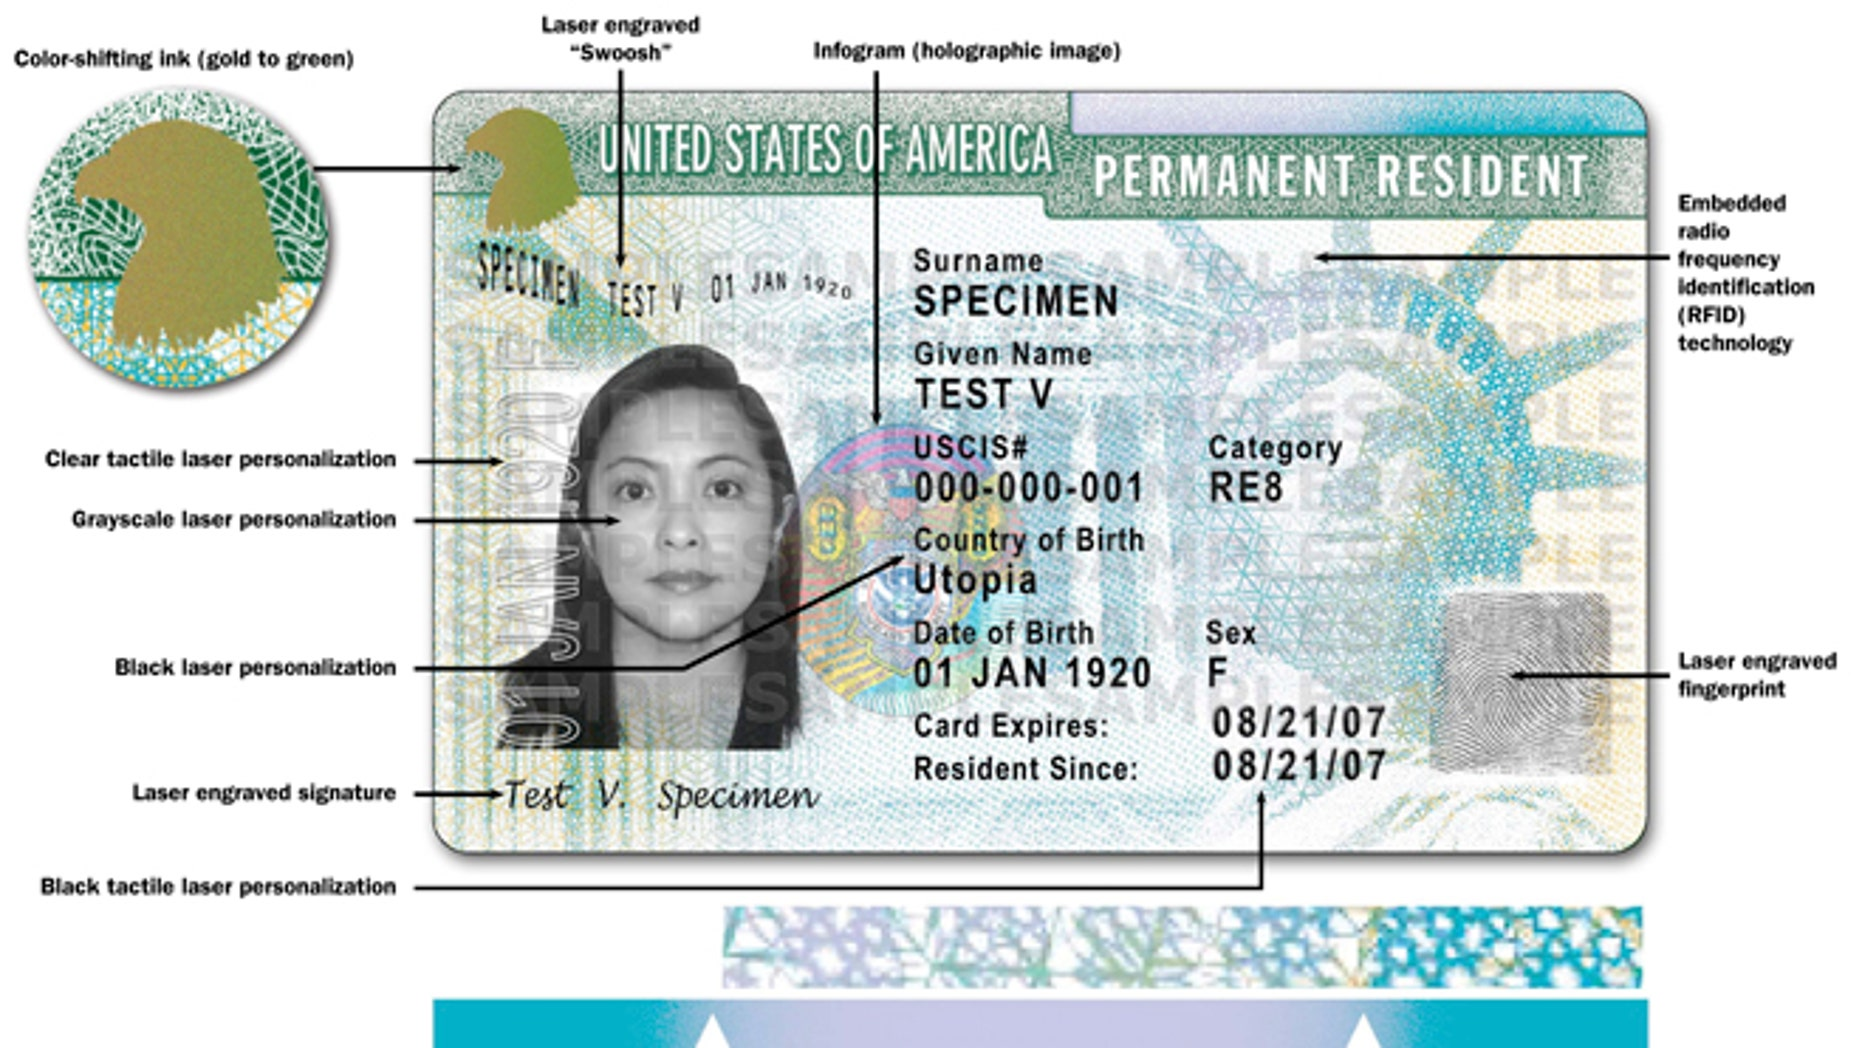 This image provided by the U.S. Citizenship and Immigration Services shows the new version of the Permanent Resident Card, more commonly known as a green card. The Homeland Security Department appears to be preparing for an increase in the number of immigrants living illegally in the country to apply for work permits after President Barack Obama announces his long-promised plans for executive actions on immigration reform later this year. USCIS confirmed to The Associated Press that it has published a draft contract proposal to buy the card stock needed to make work permits and Permanent Resident Cards. (AP Photo/U.S. Citizenship and Immigration Services)